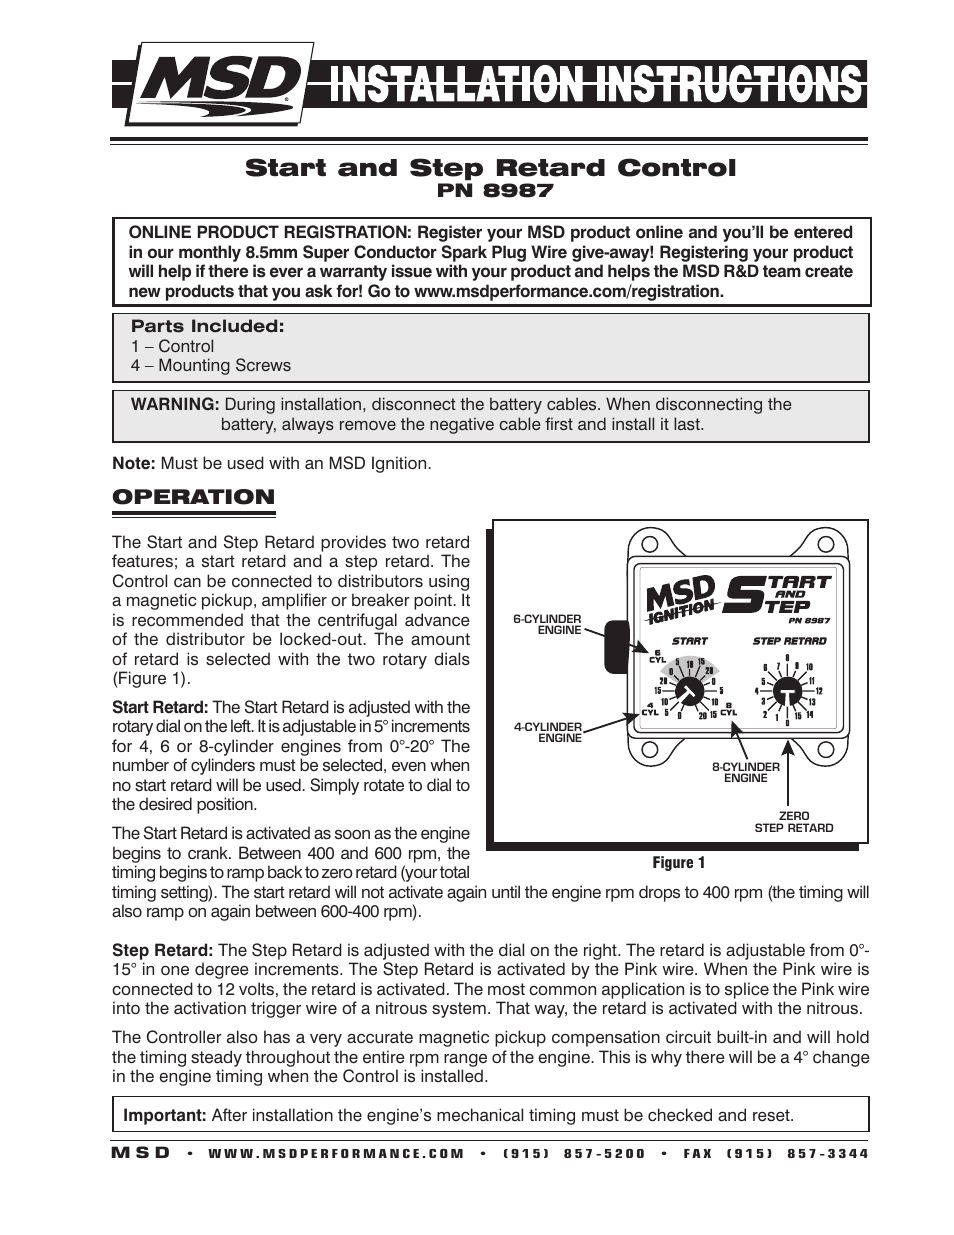 msd 8987 start and step timing control installation page1 msd 8987 start and step timing control installation user manual msd 8987 wiring diagram at virtualis.co